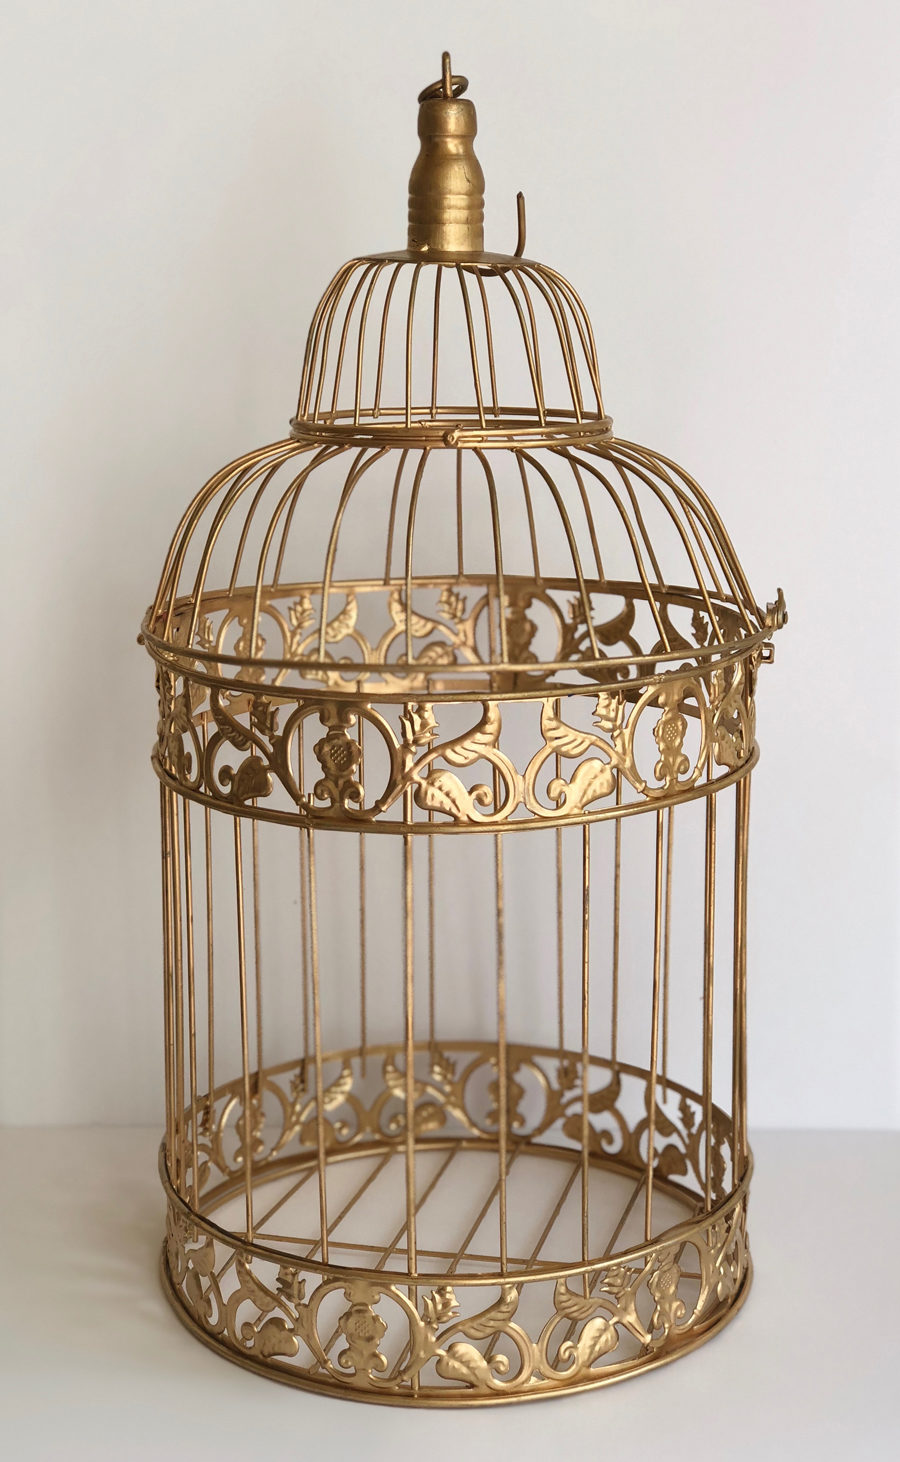 Bird Cage For hire in Johannesburg